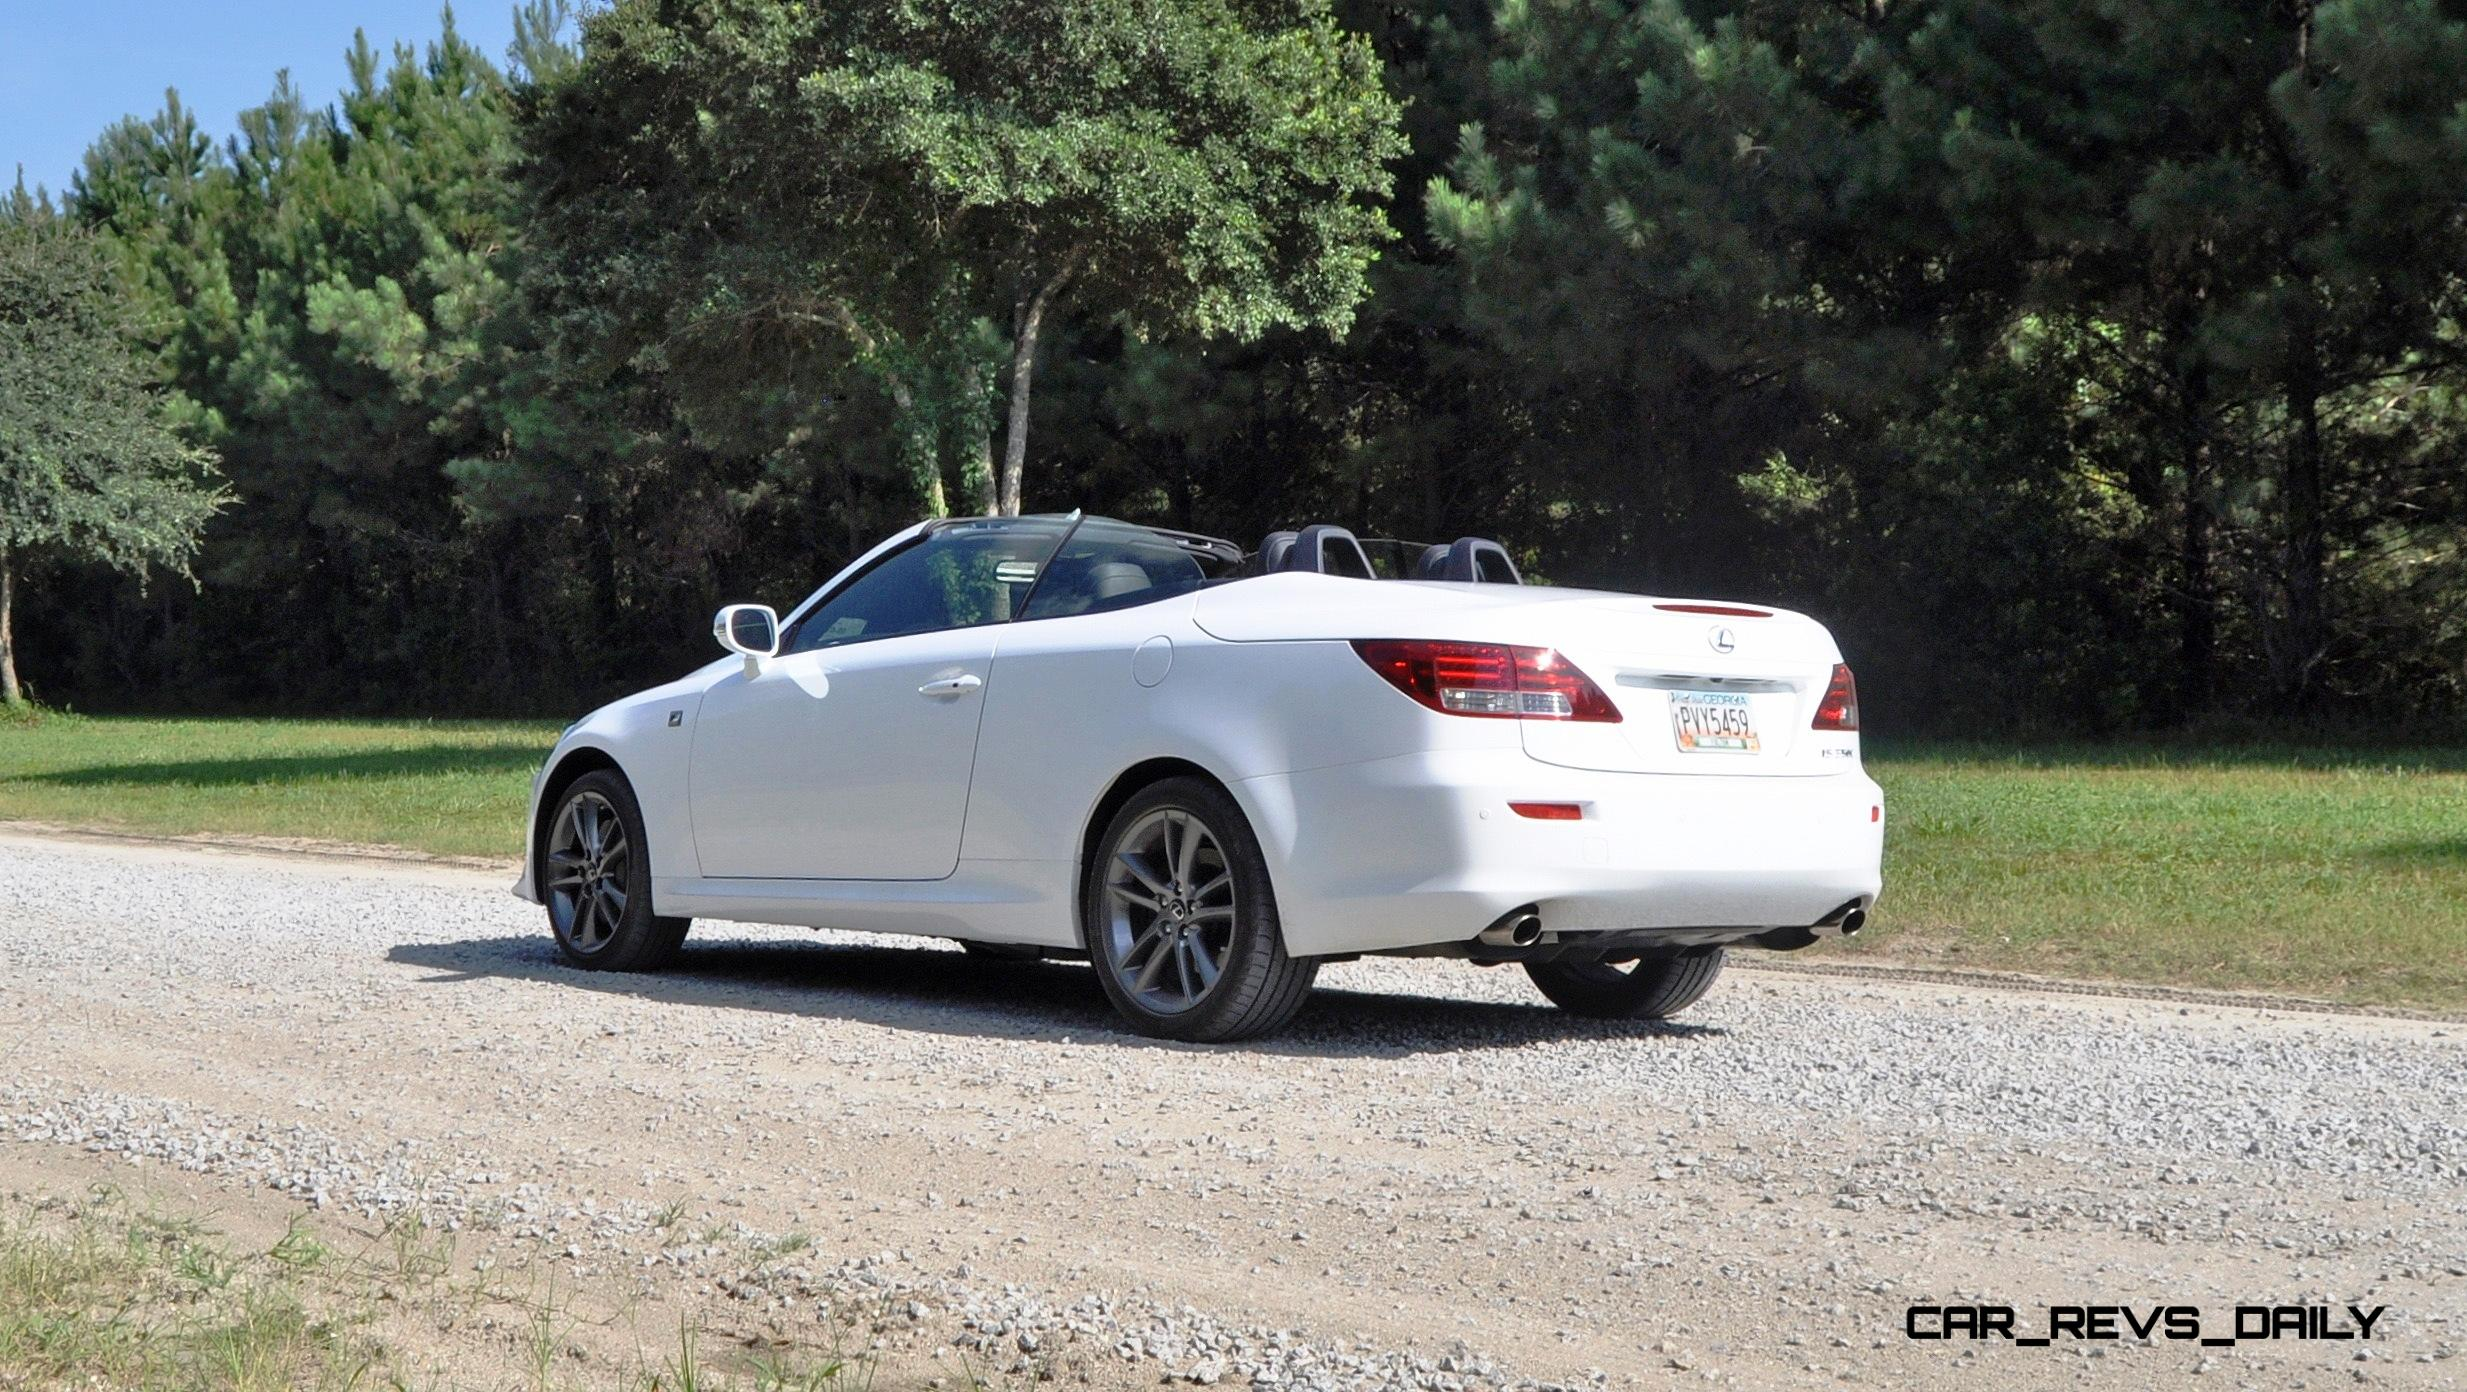 year earlier review test to i overall close that autosavant car rang my infiniti in was lexus is the of convertible remarkably reviewed price msrp